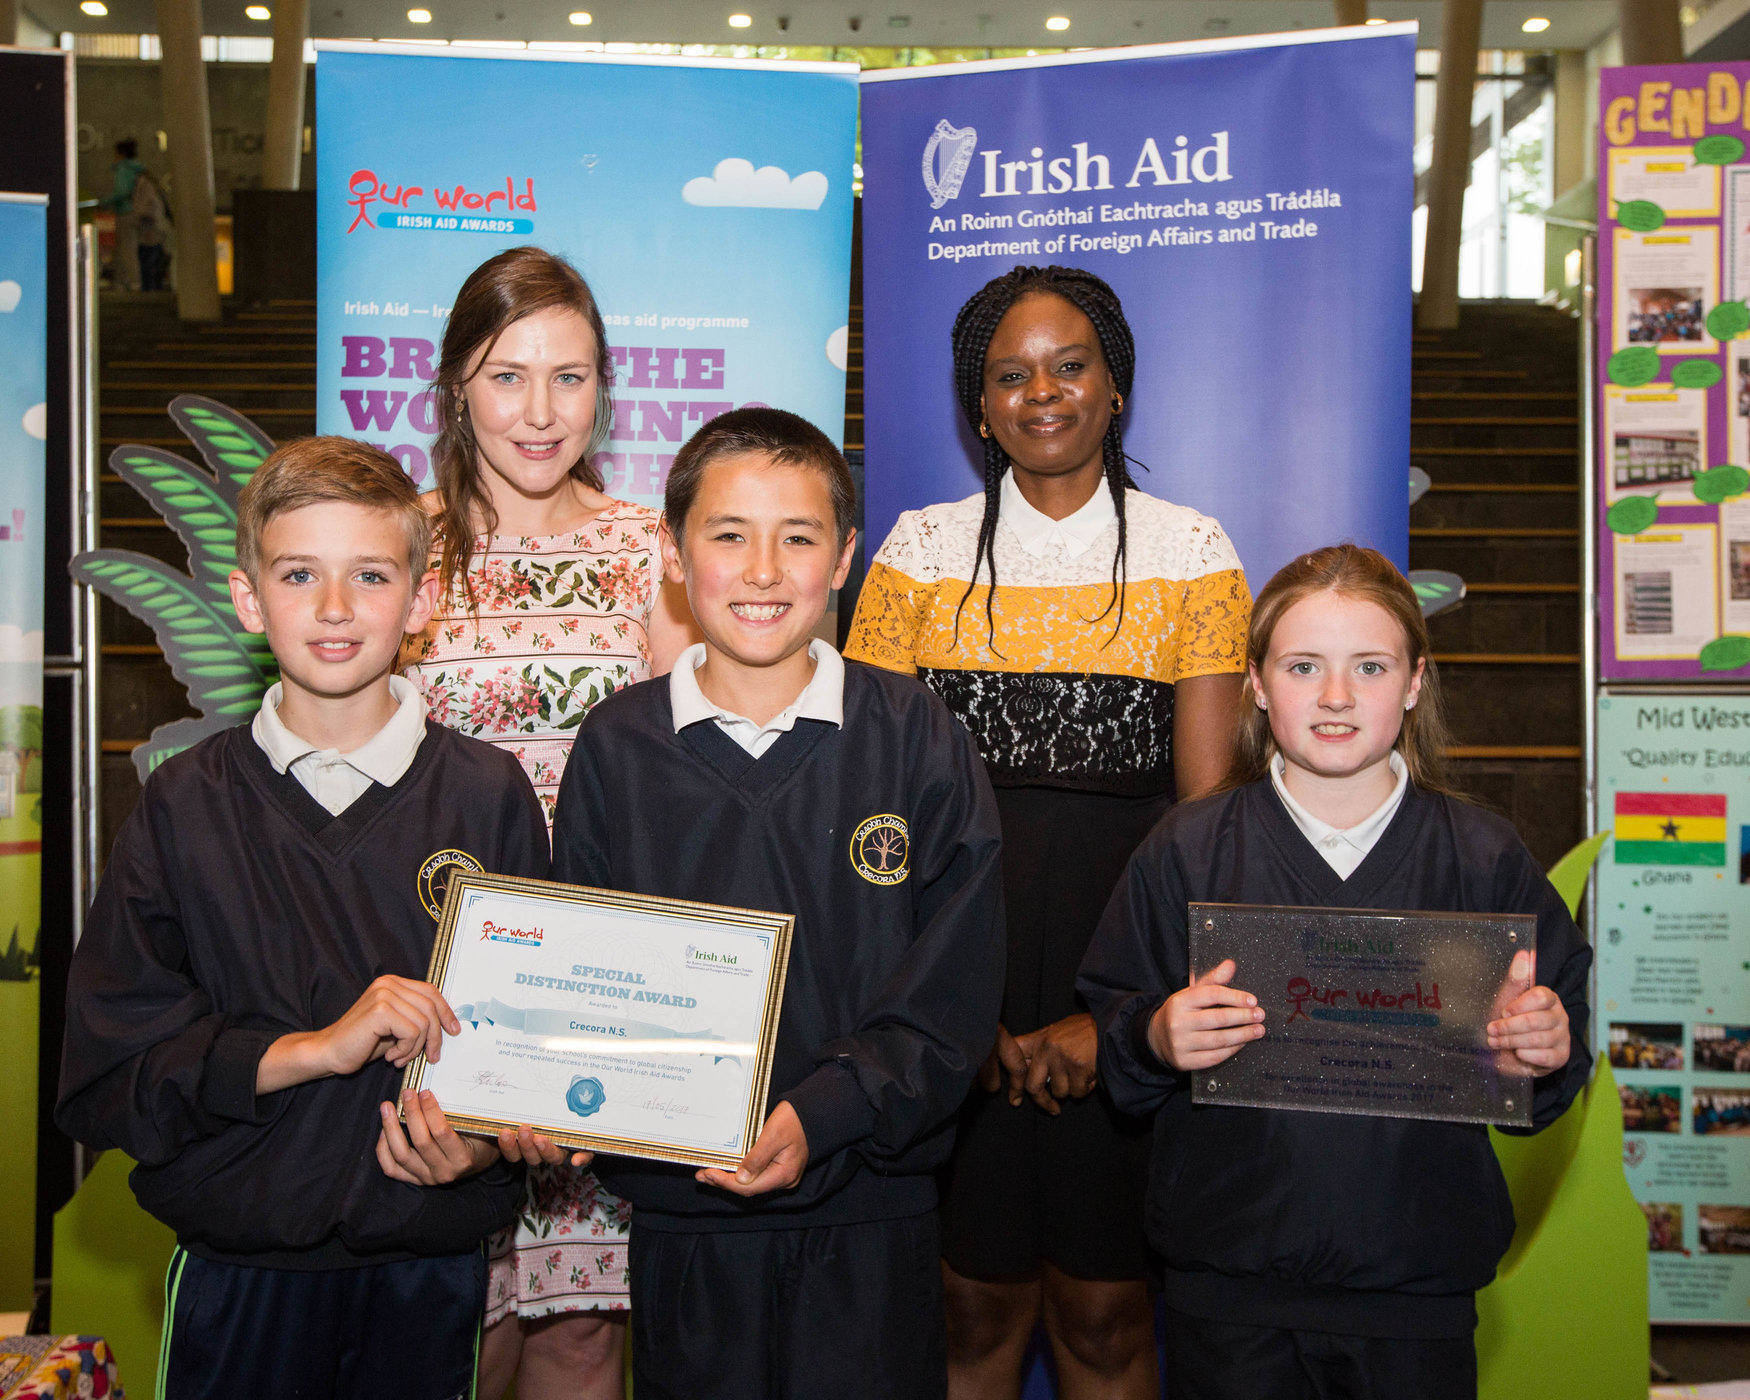 Our World Irish Aid Awards 2017